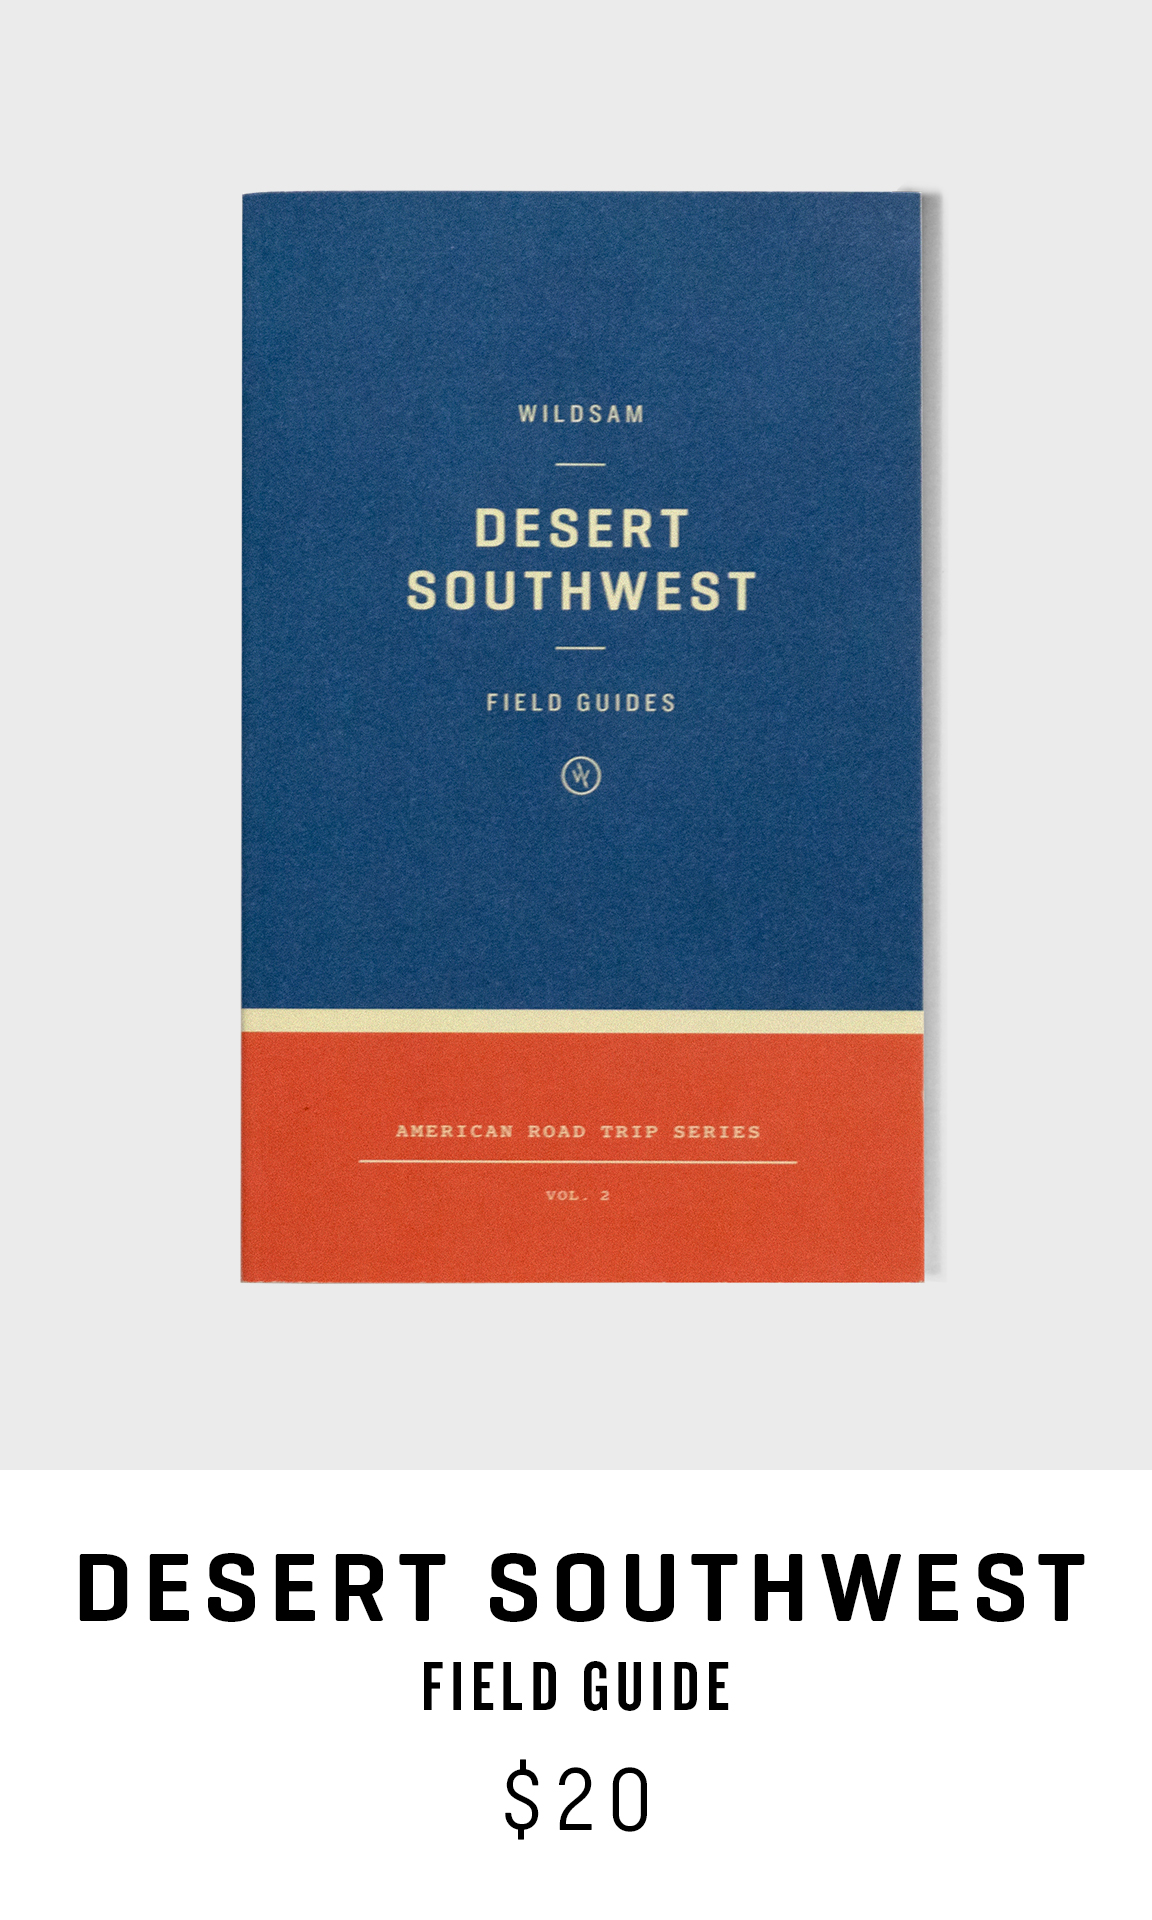 Desert_Southwest-Product-CARD.jpg